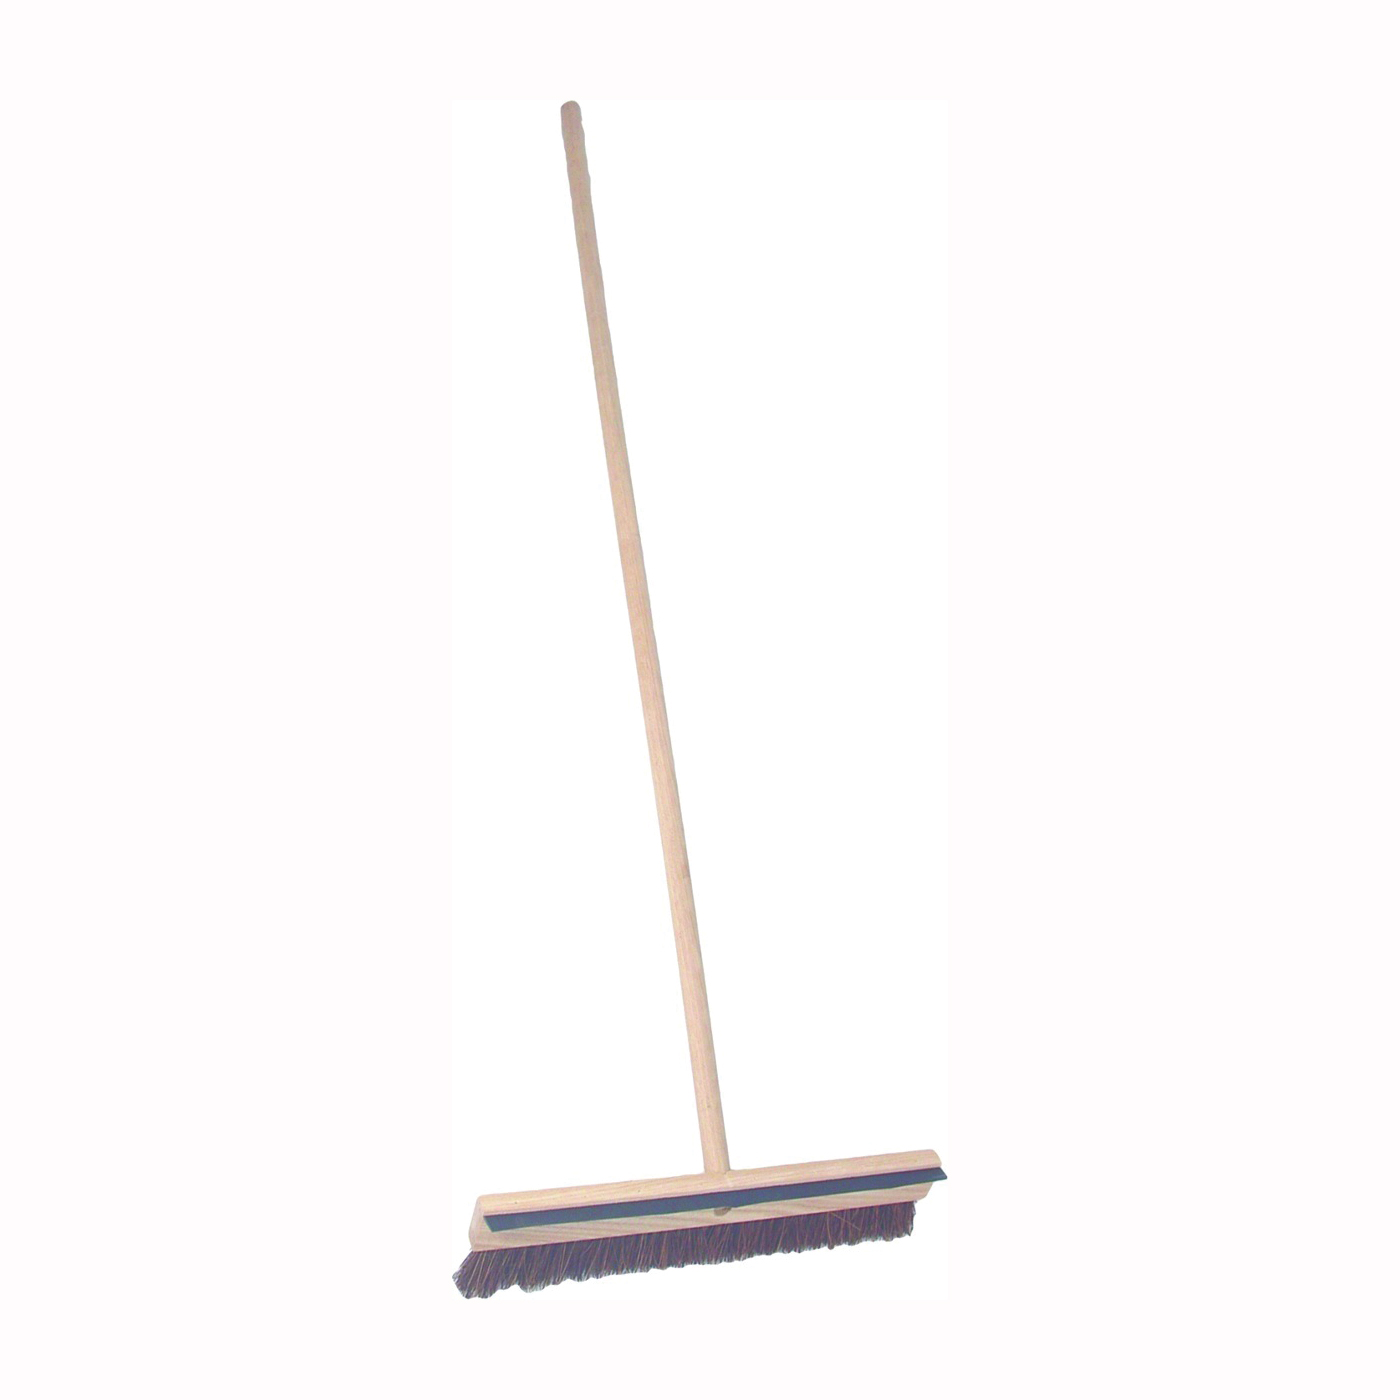 Picture of BIRDWELL 112-12 Driveway Coater, 18 in L x 2 in W x 3/4 in H Head, Hardwood Head, Palmyra Bristle, Hardwood Handle